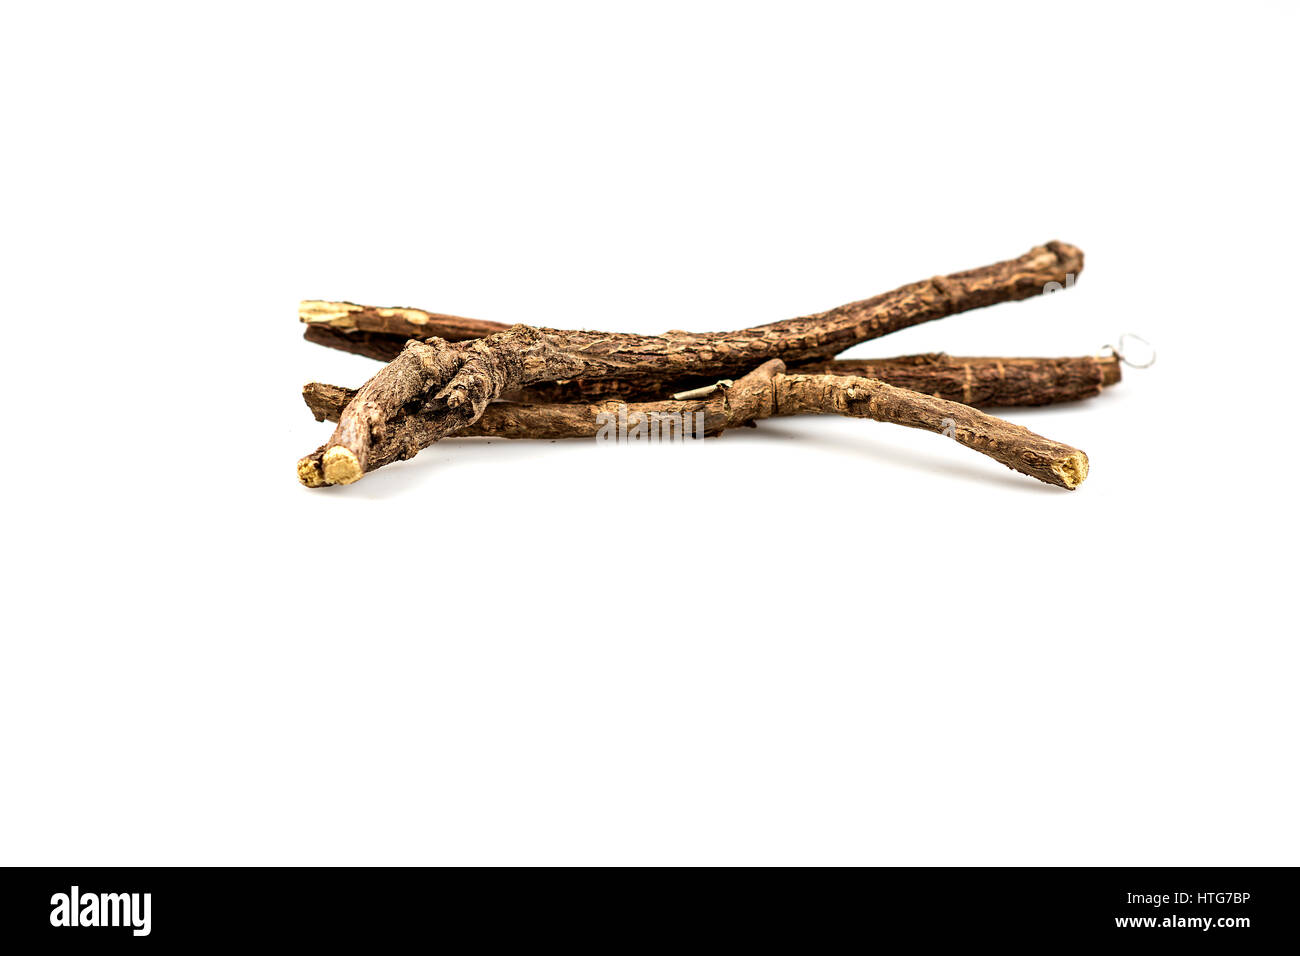 Licorice Root Sticks - Stock Image